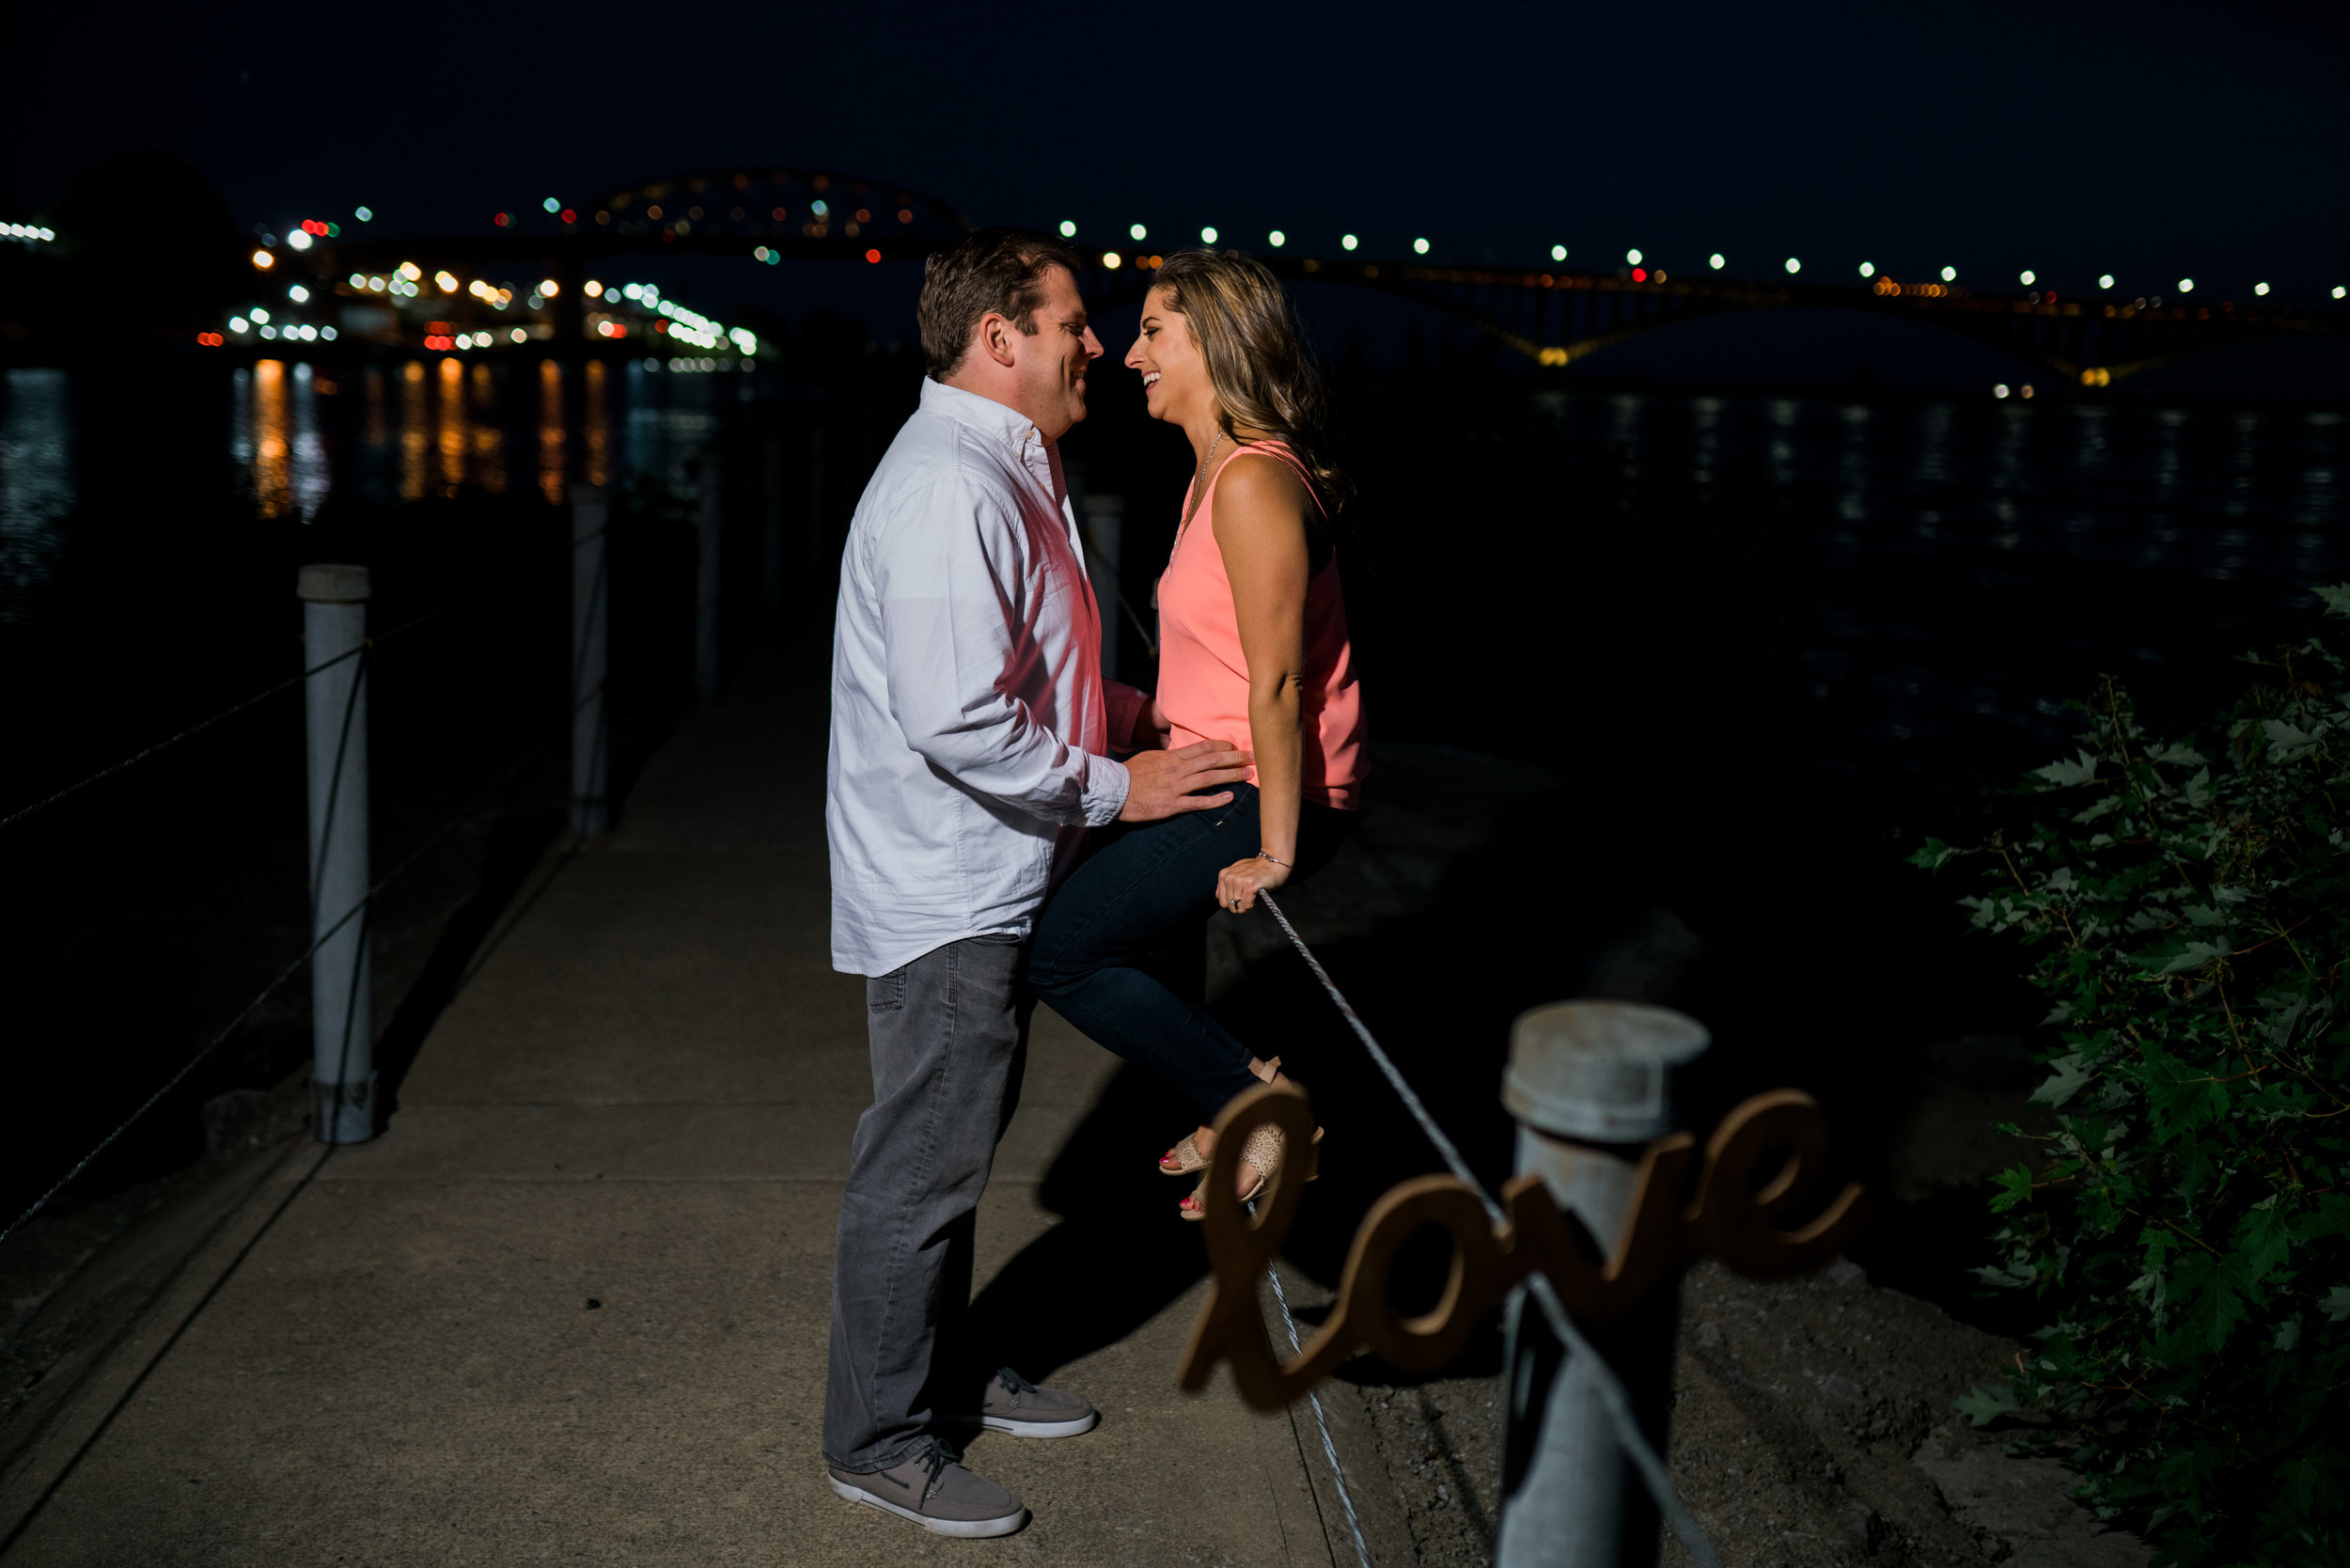 Nancy and David Engagement Photography by Stefan Ludwig in Buffalo NY-48.jpg